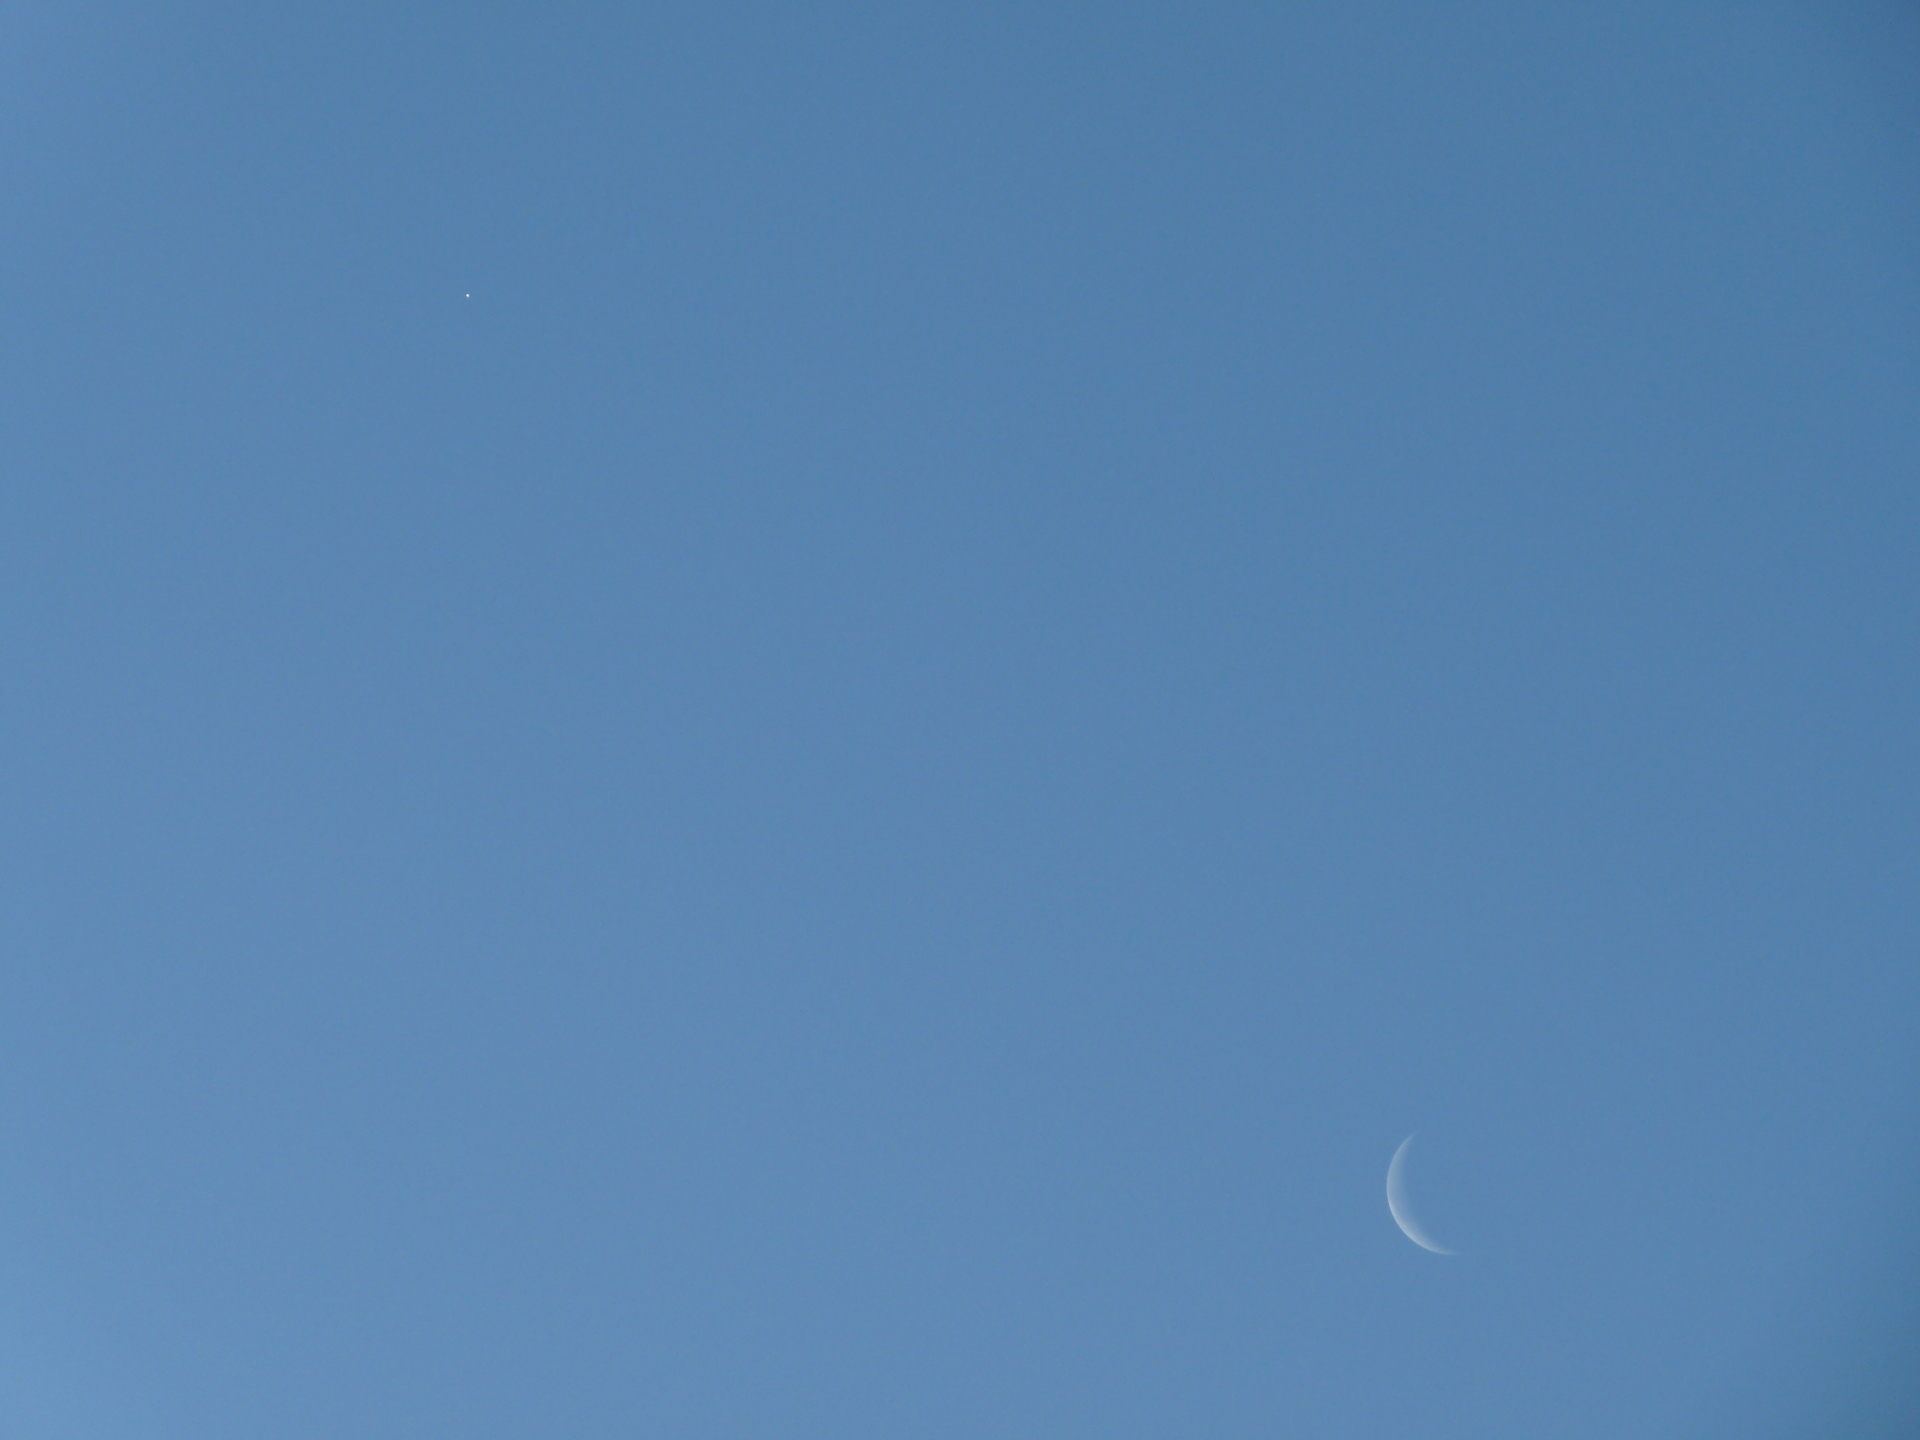 The morning star and moon